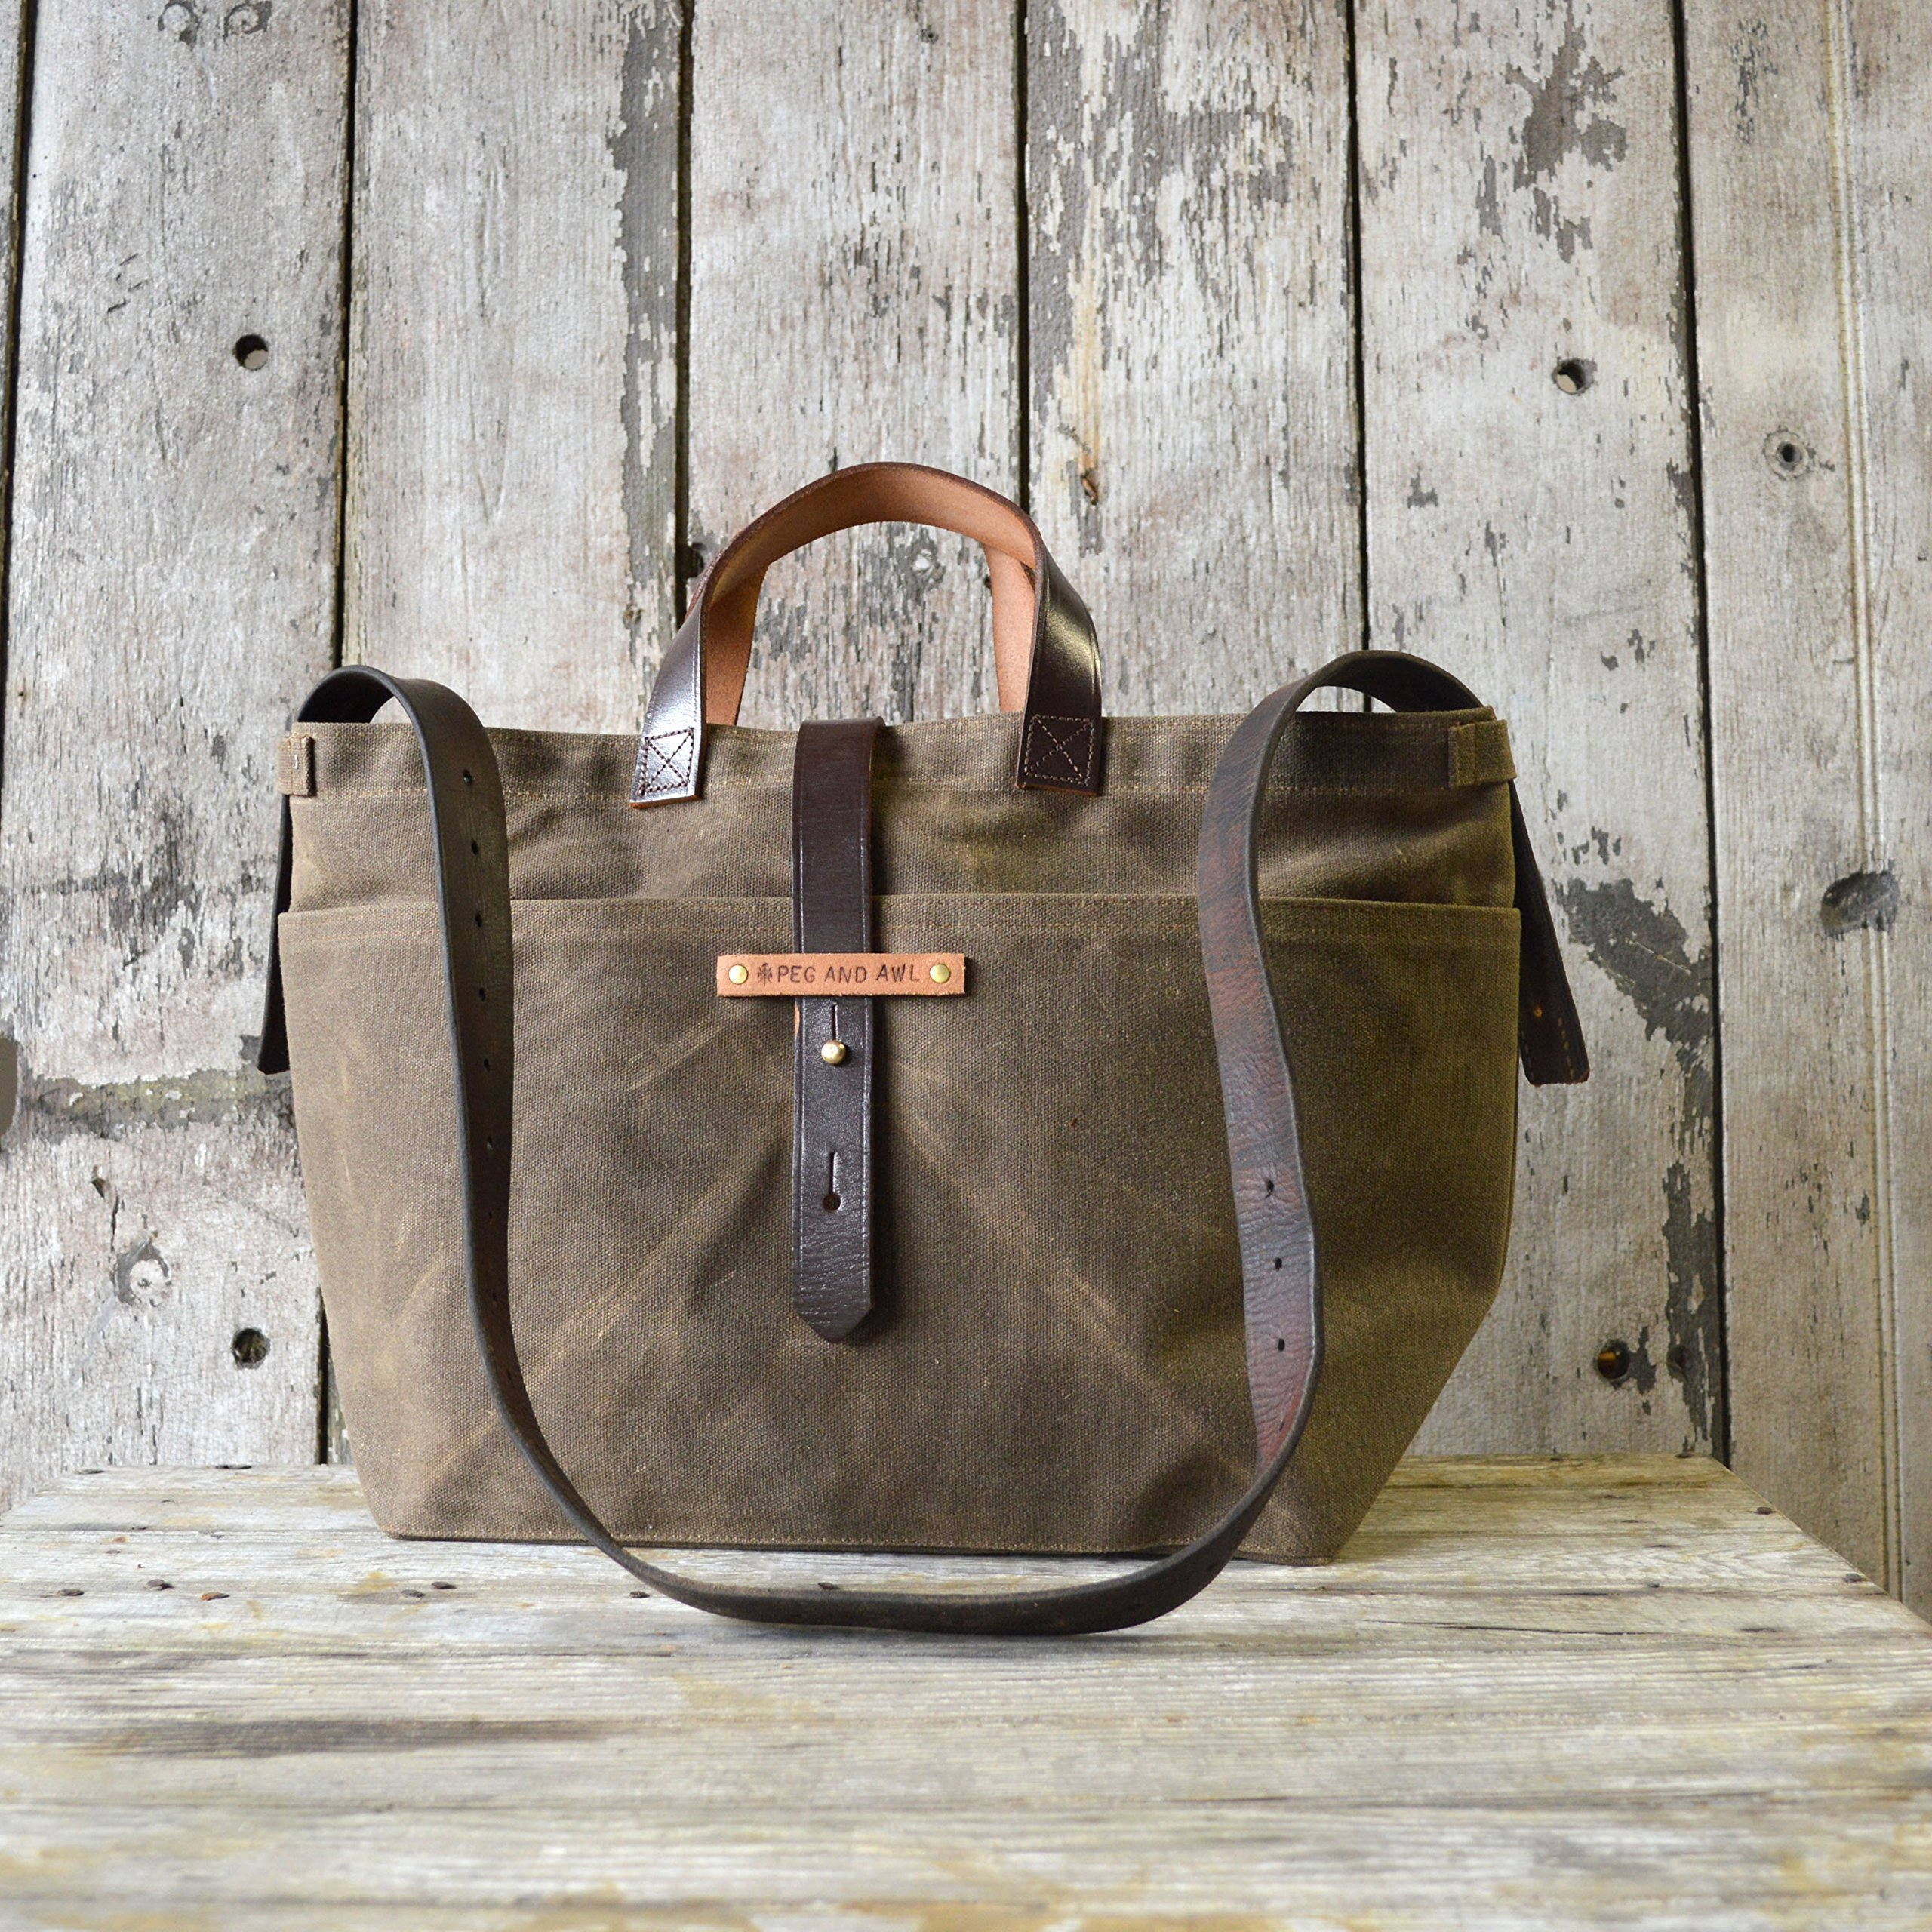 Waxed Canvas Tote in Truffle with Zipper by Peg and Awl